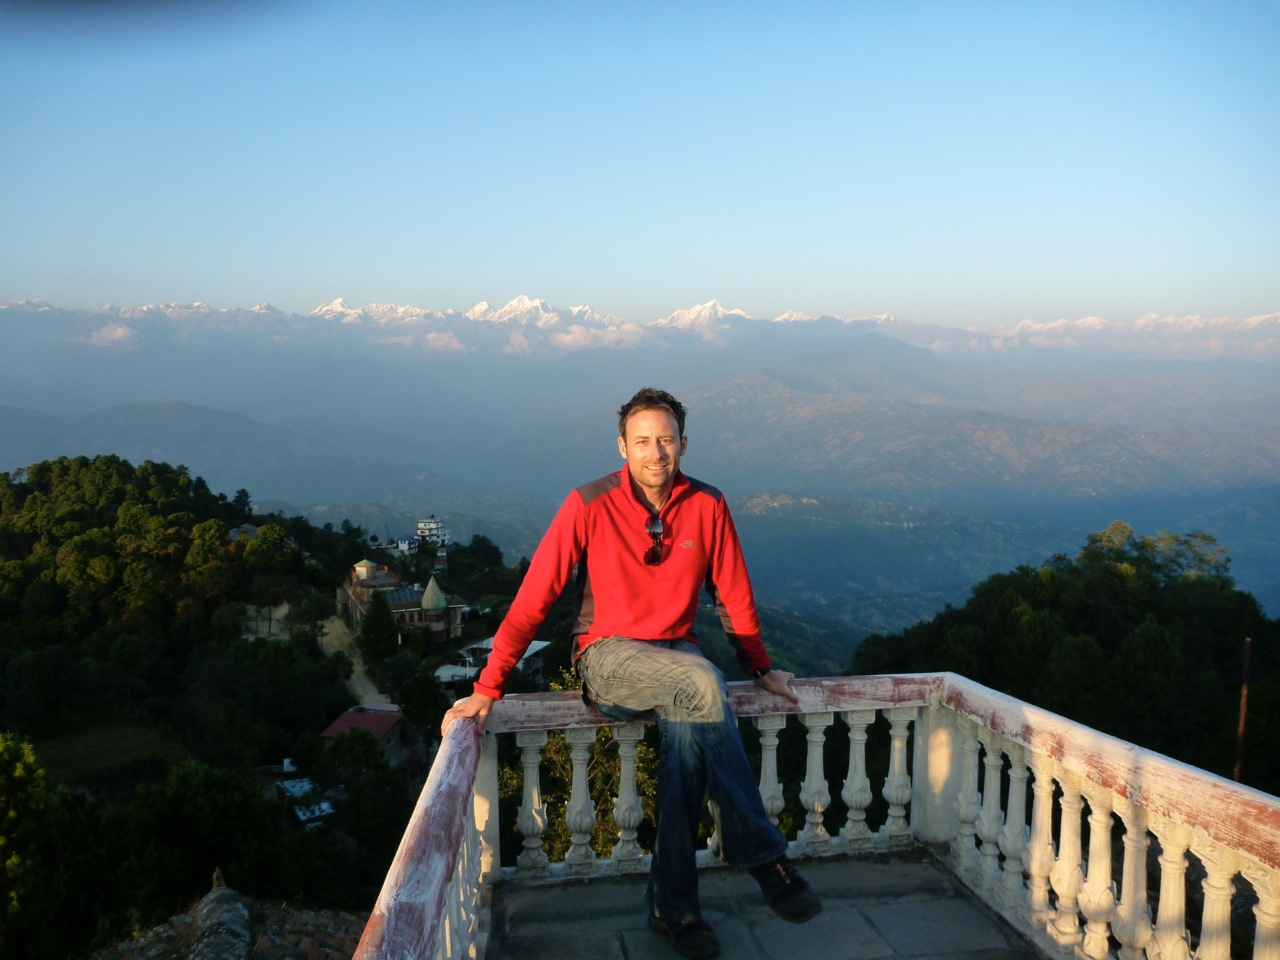 View of the Himalayas from Nargakot, Nepal. Image courtesy of Kevin Raub